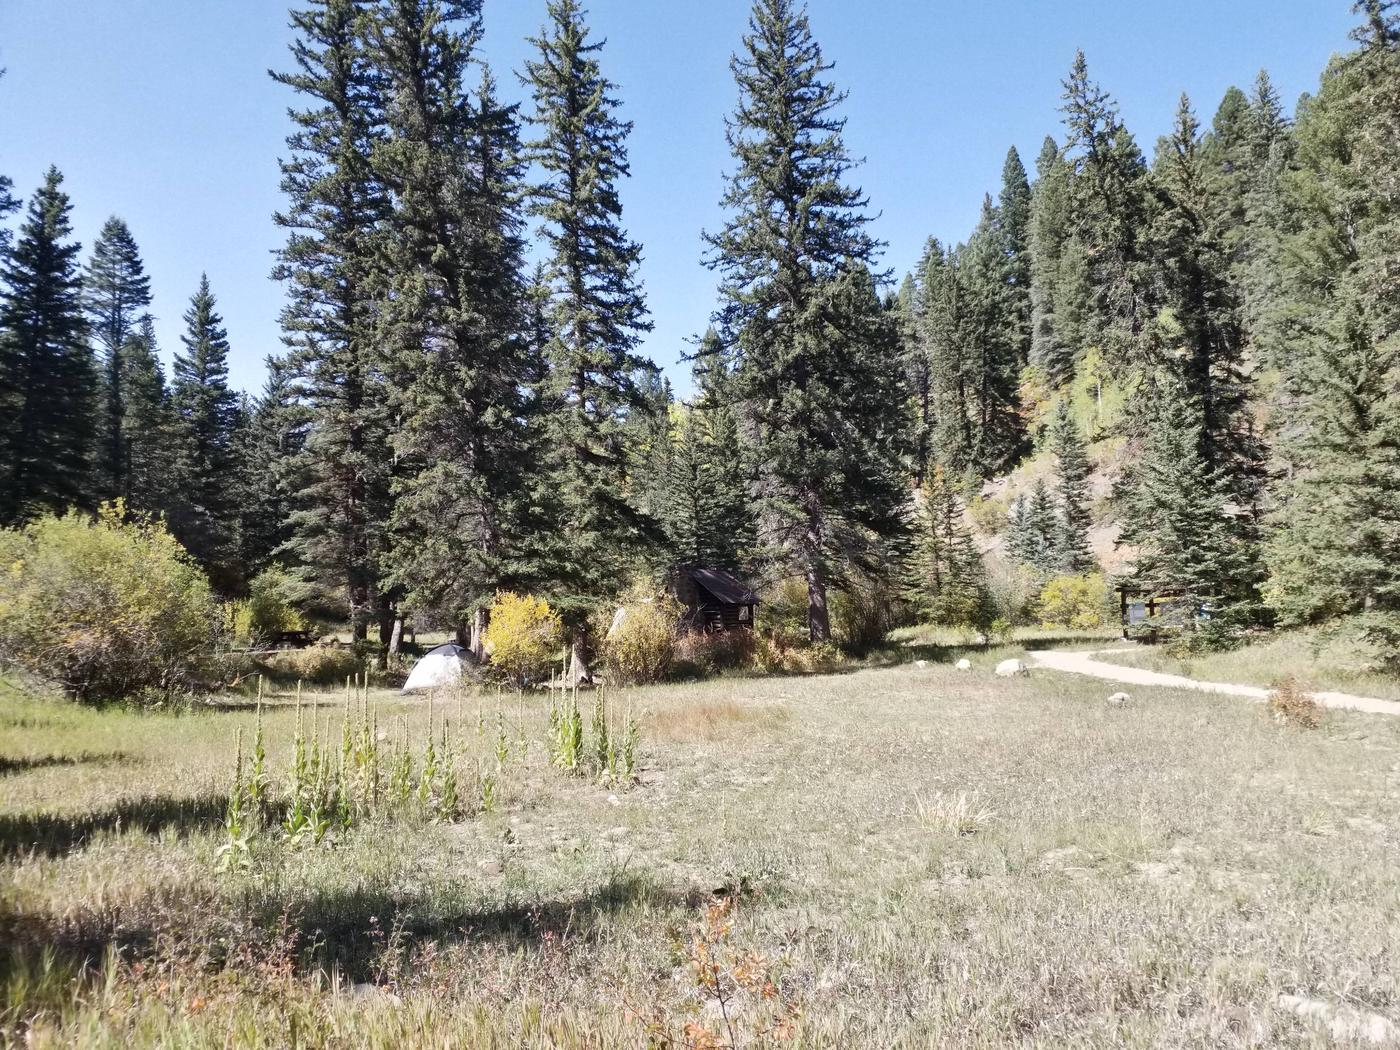 A meadow with spruce and changing fall colors from shrubs in the campground.Meadow in Panchuela Campground.